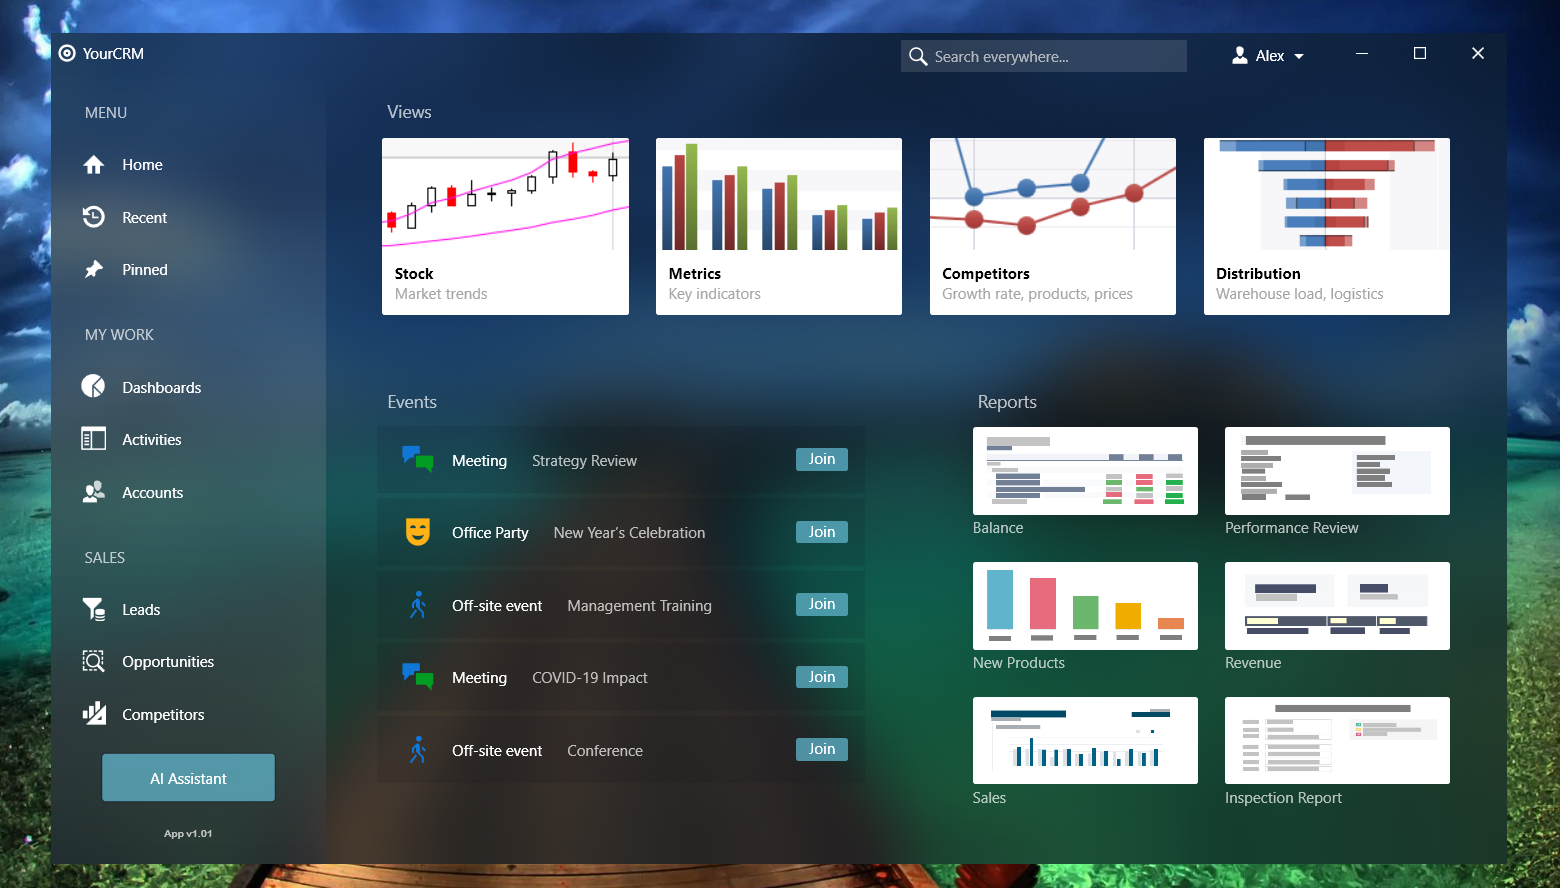 WPF App Design   Views with Flexible Appearance Options